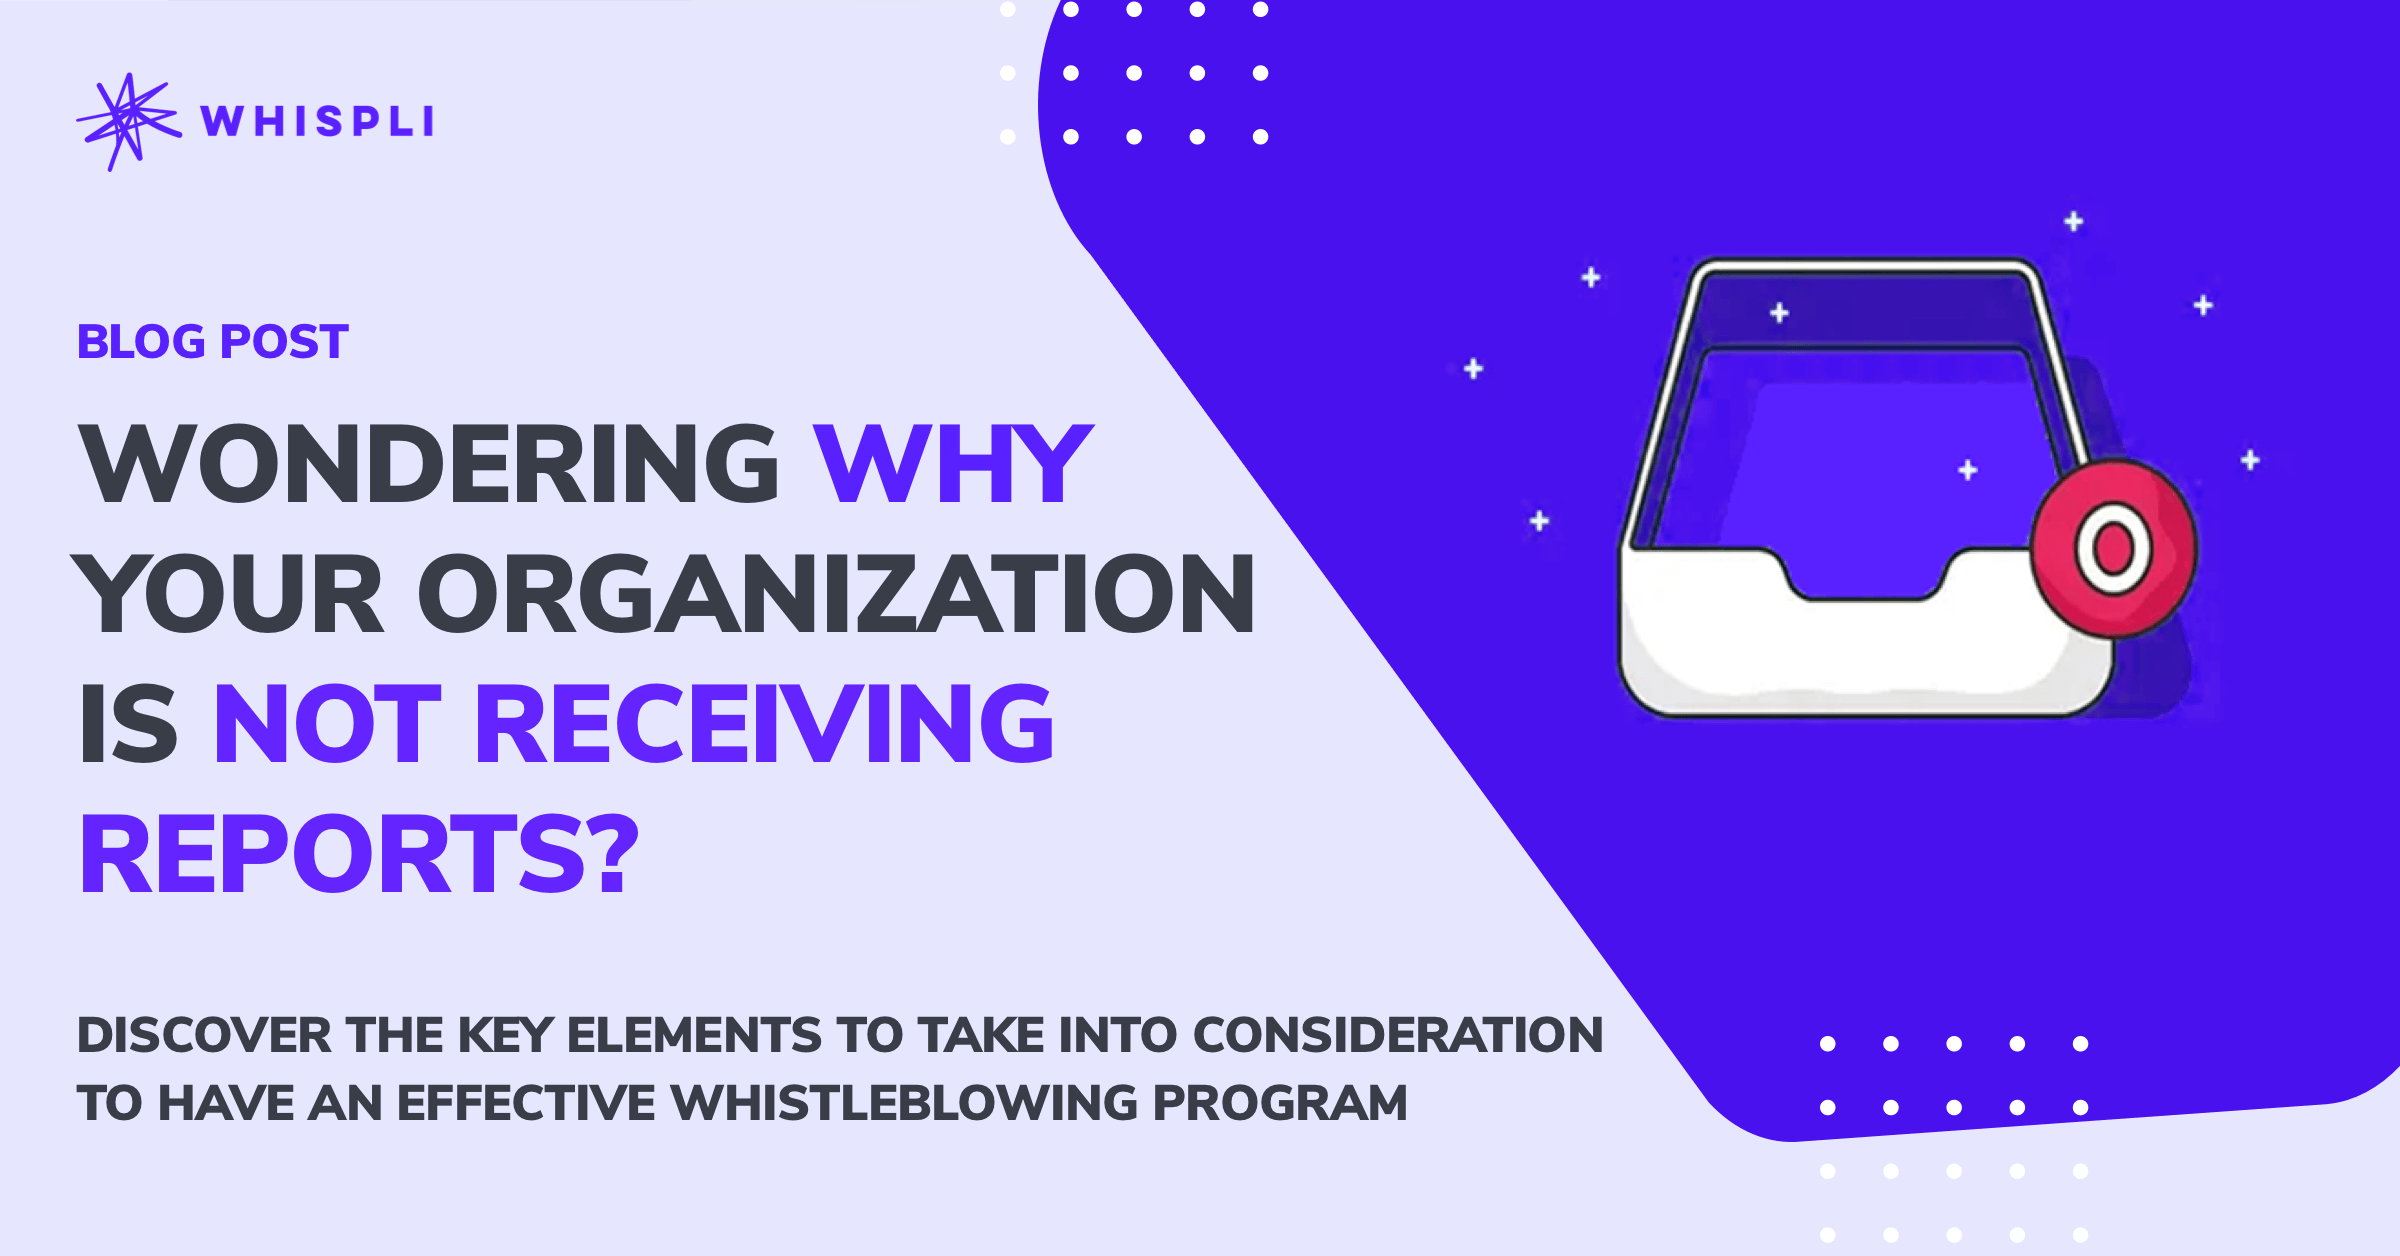 Wondering why your organization is not receiving reports?